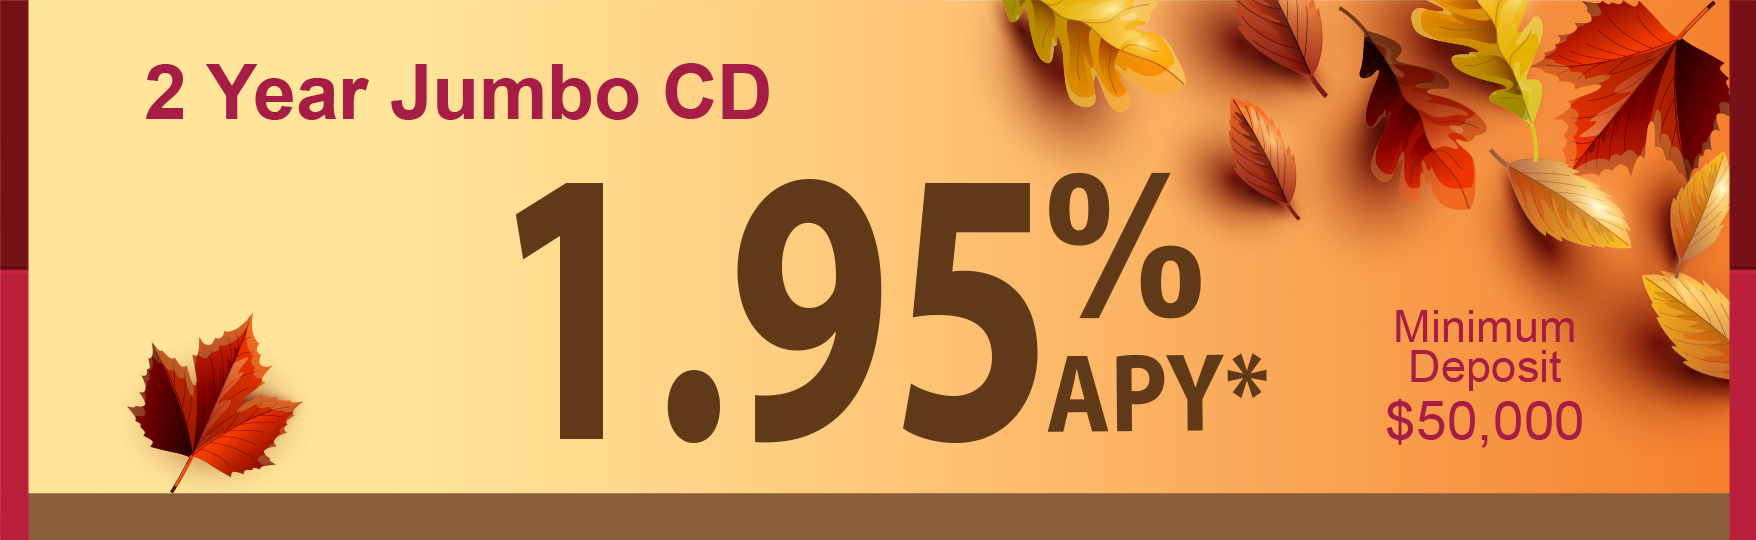 2 Year Jumbo CD: 1.95%APY*. Minimum deposit $50,000